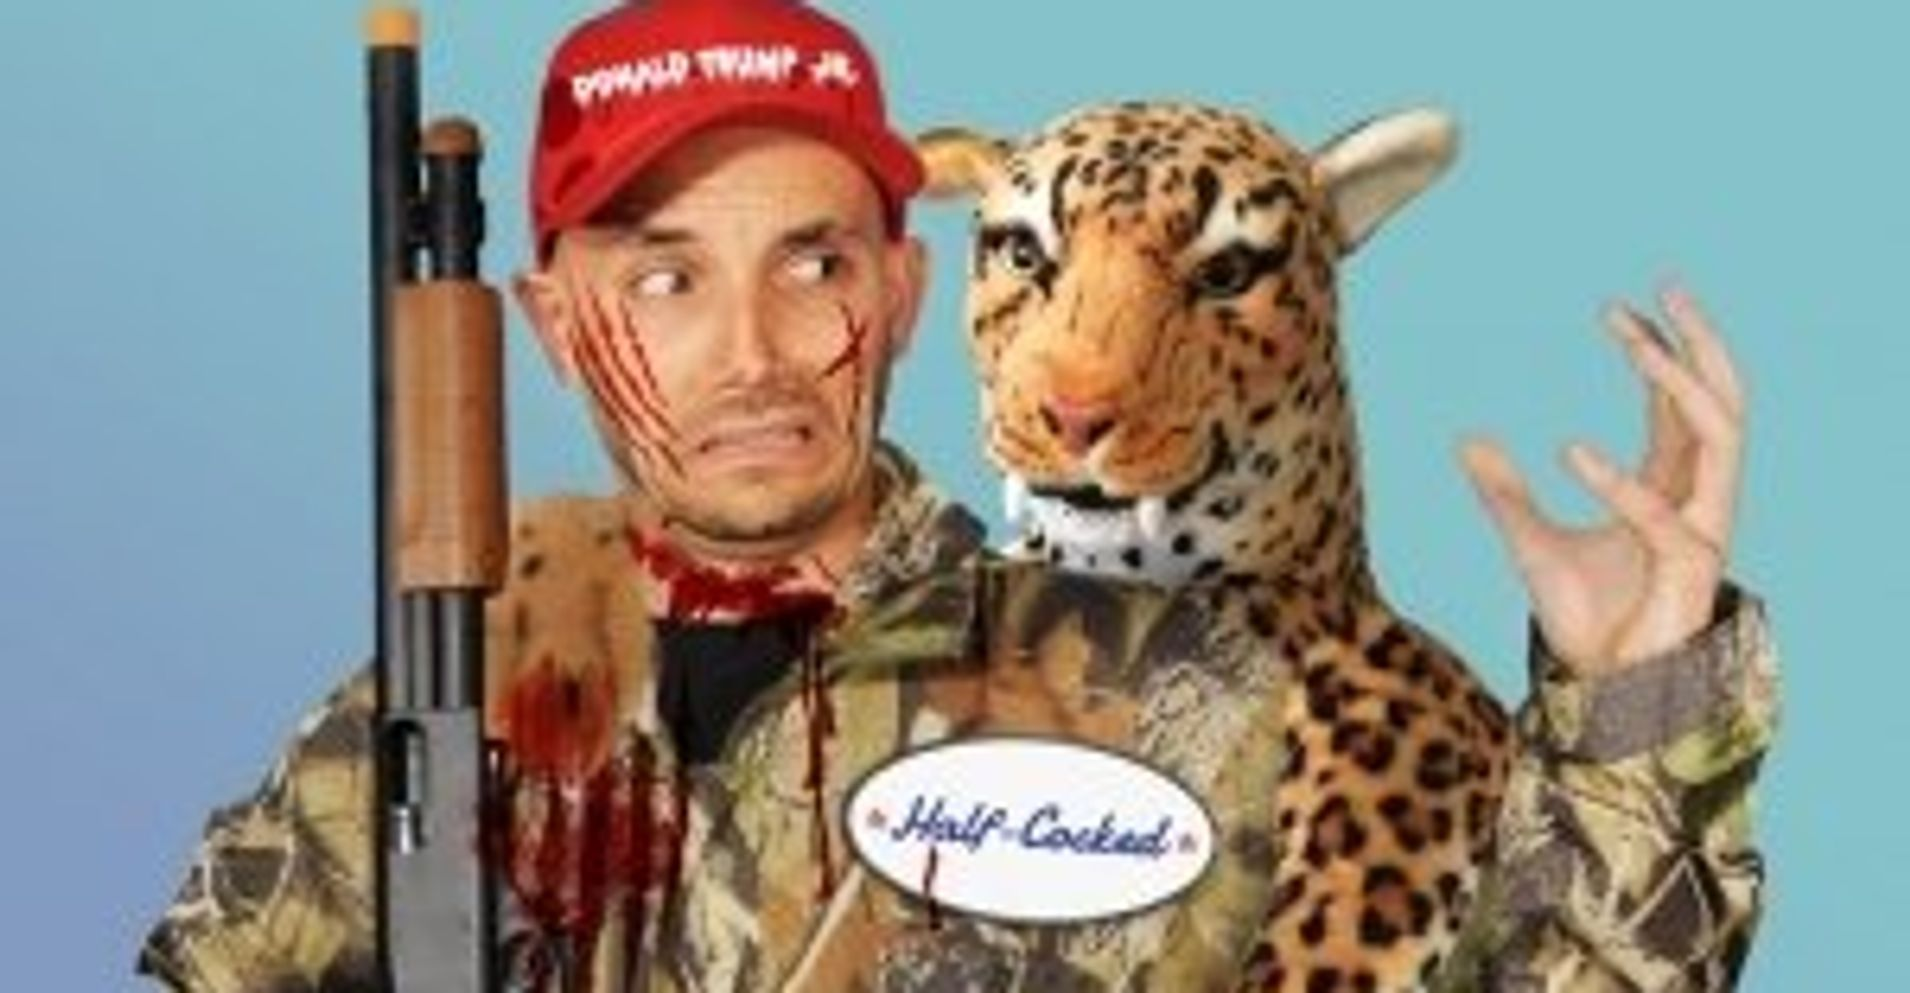 Now You Can Dress Up Like 'Big Game Hunter' Donald Trump Jr. | HuffPost